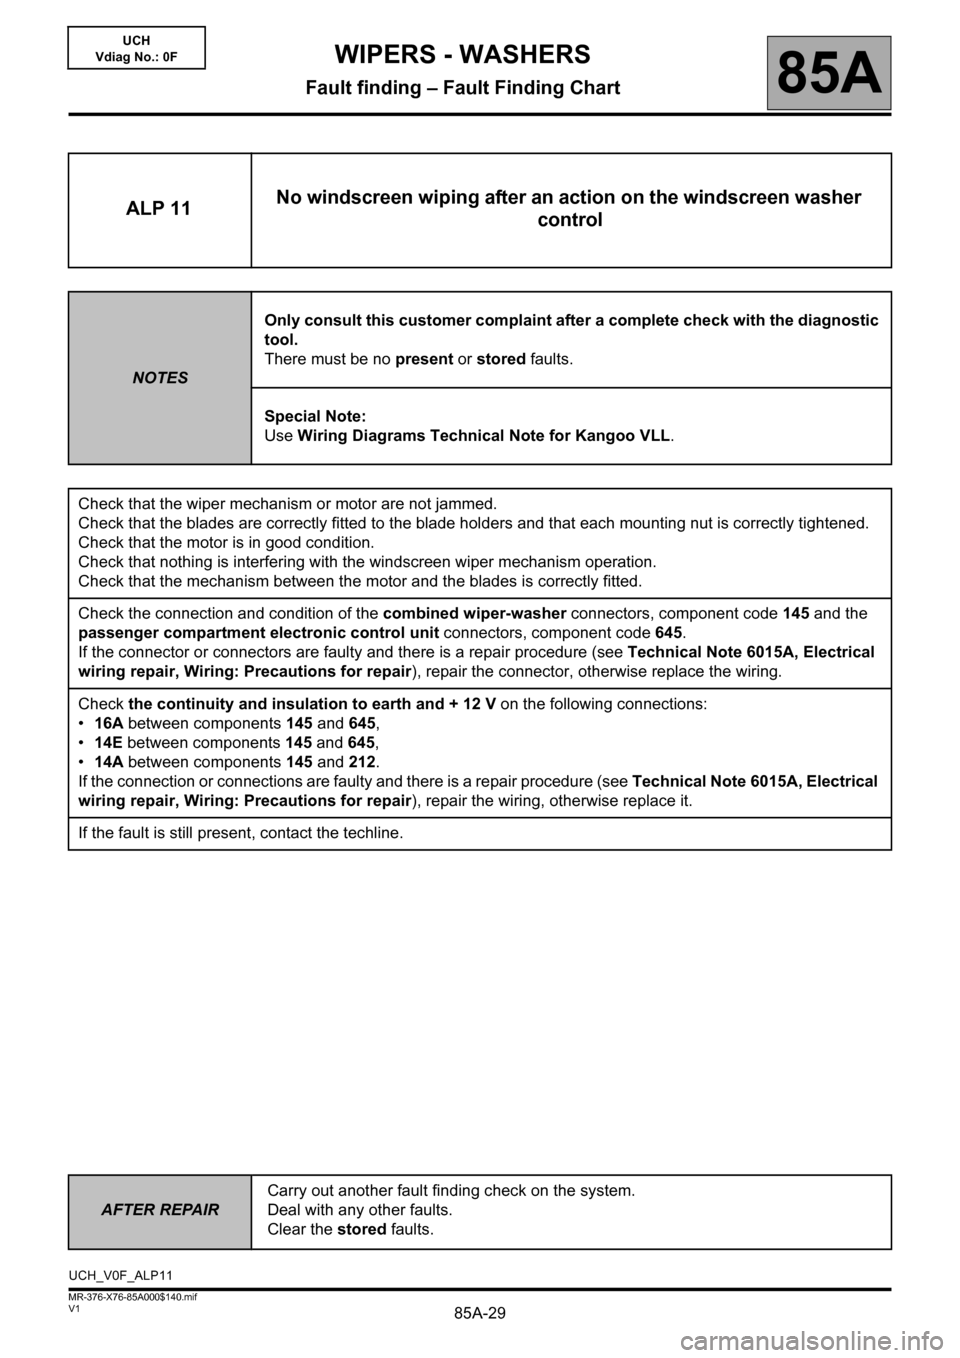 RENAULT KANGOO 2013 X61 / 2.G Wipers And Washers Workshop Manual, Page 29